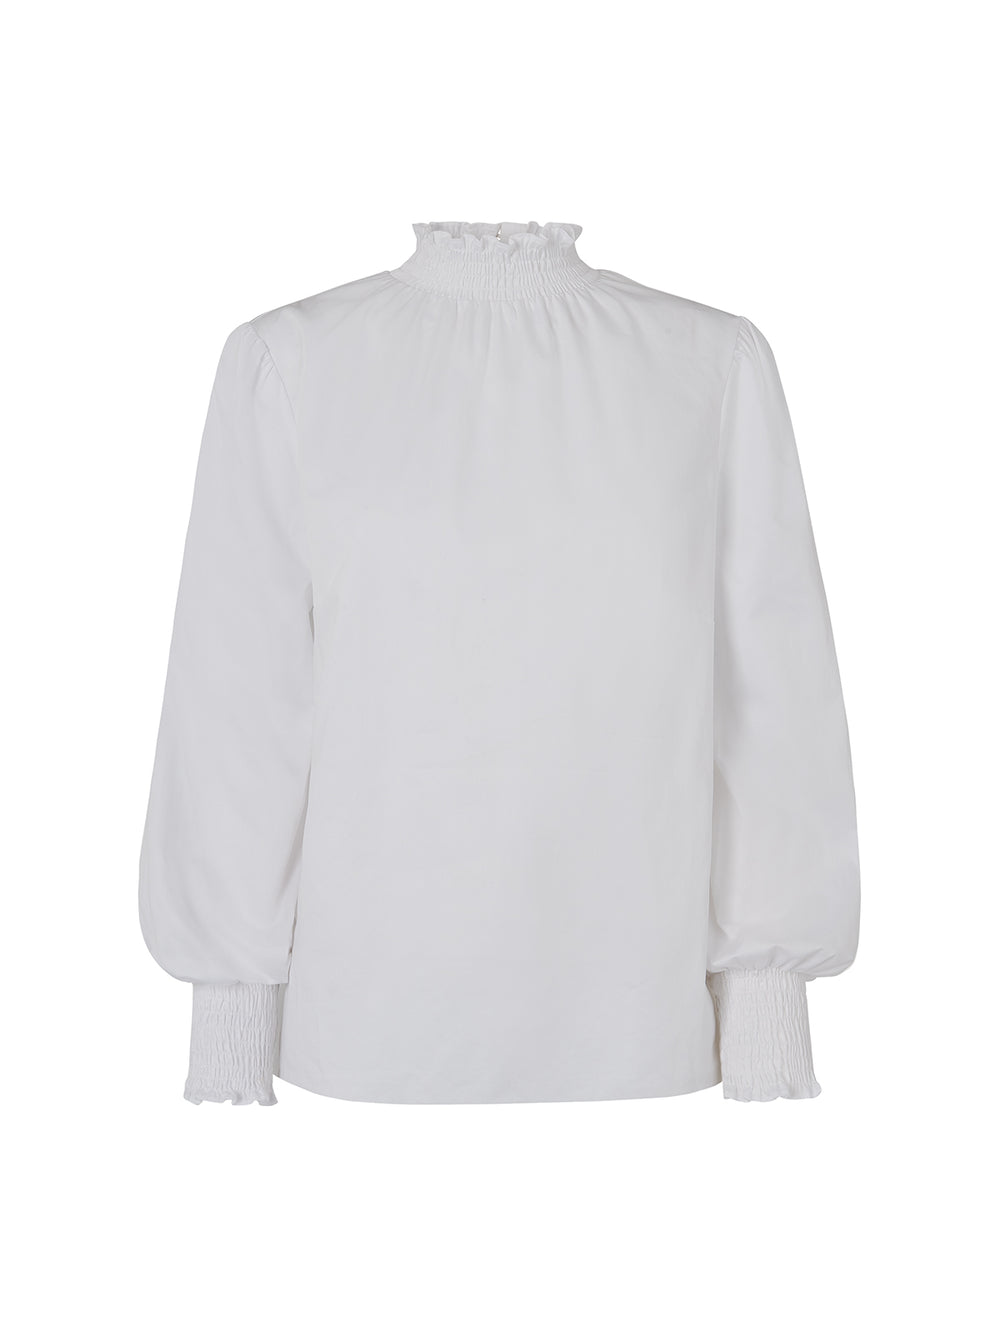 Meredith White High Neck Smocked Shirt by KITRI Studio